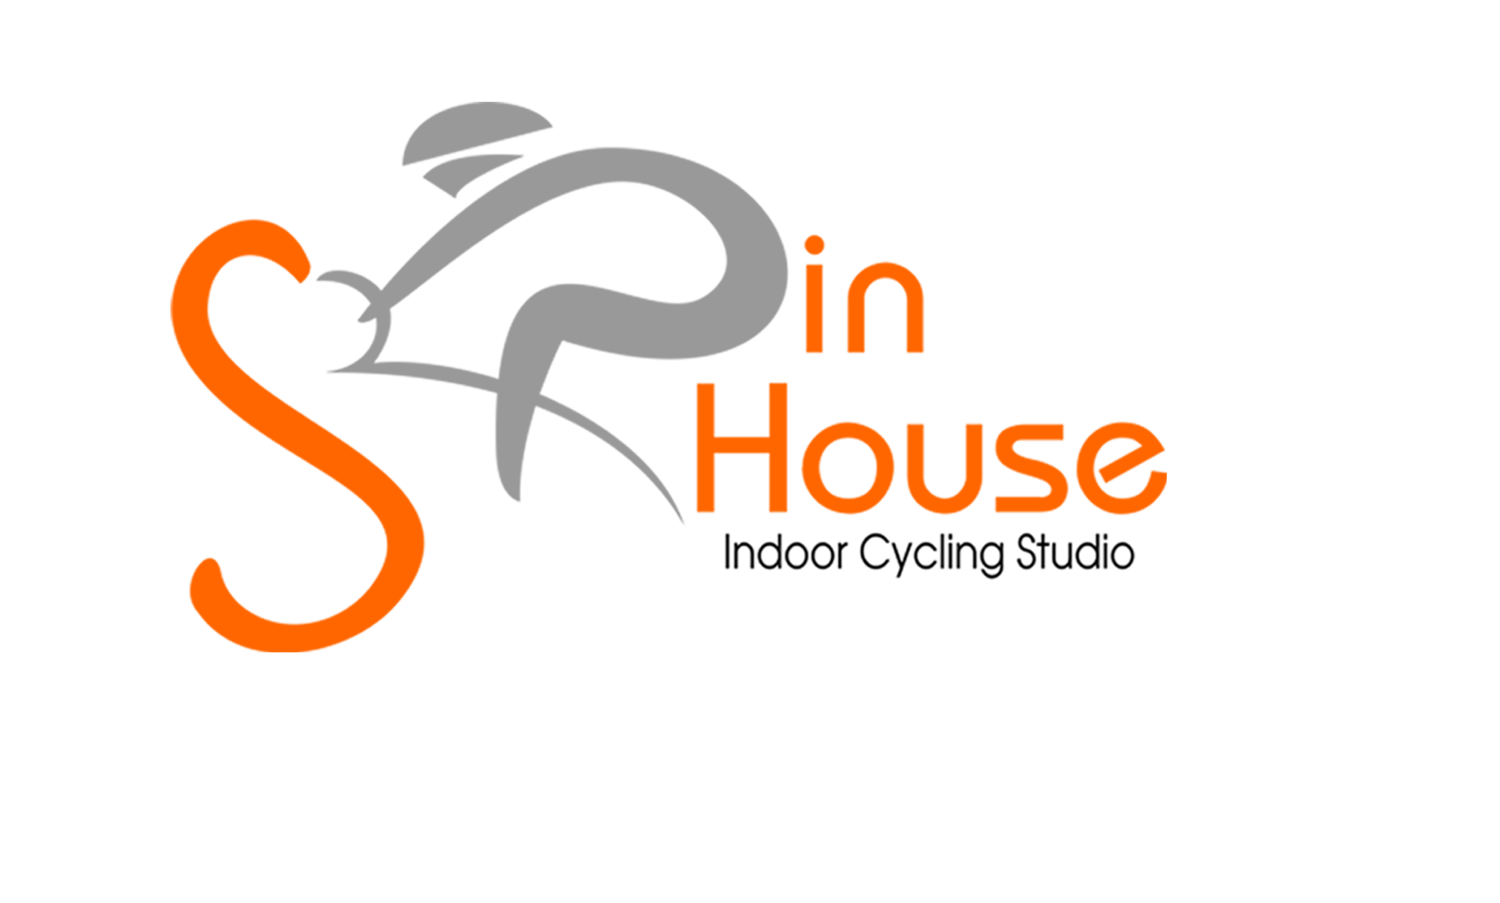 www.thespinhouse.co.uk